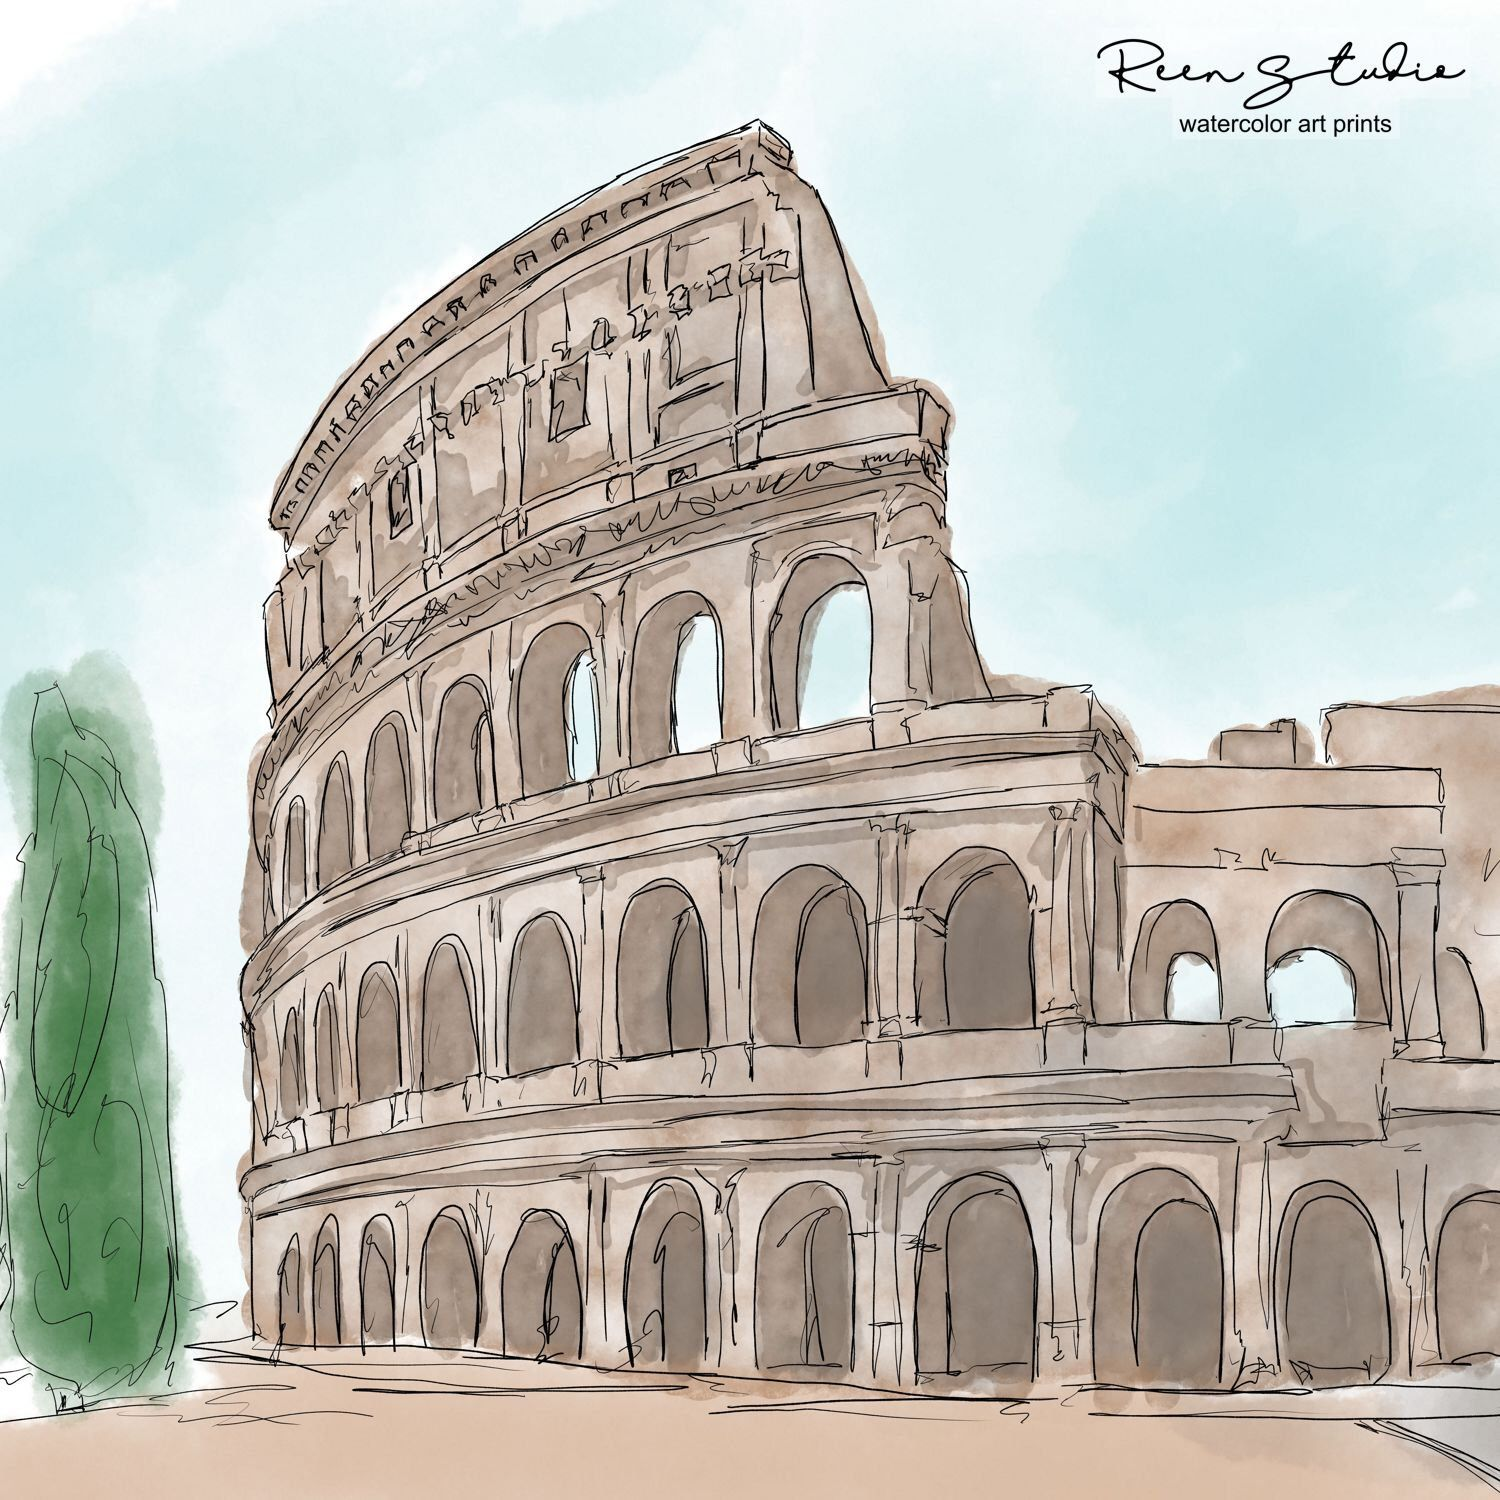 The Coloseum Rome Watercolor Wall Art Watercolor Art Prints Colorful Watercolor Wall Art Watercolor Art